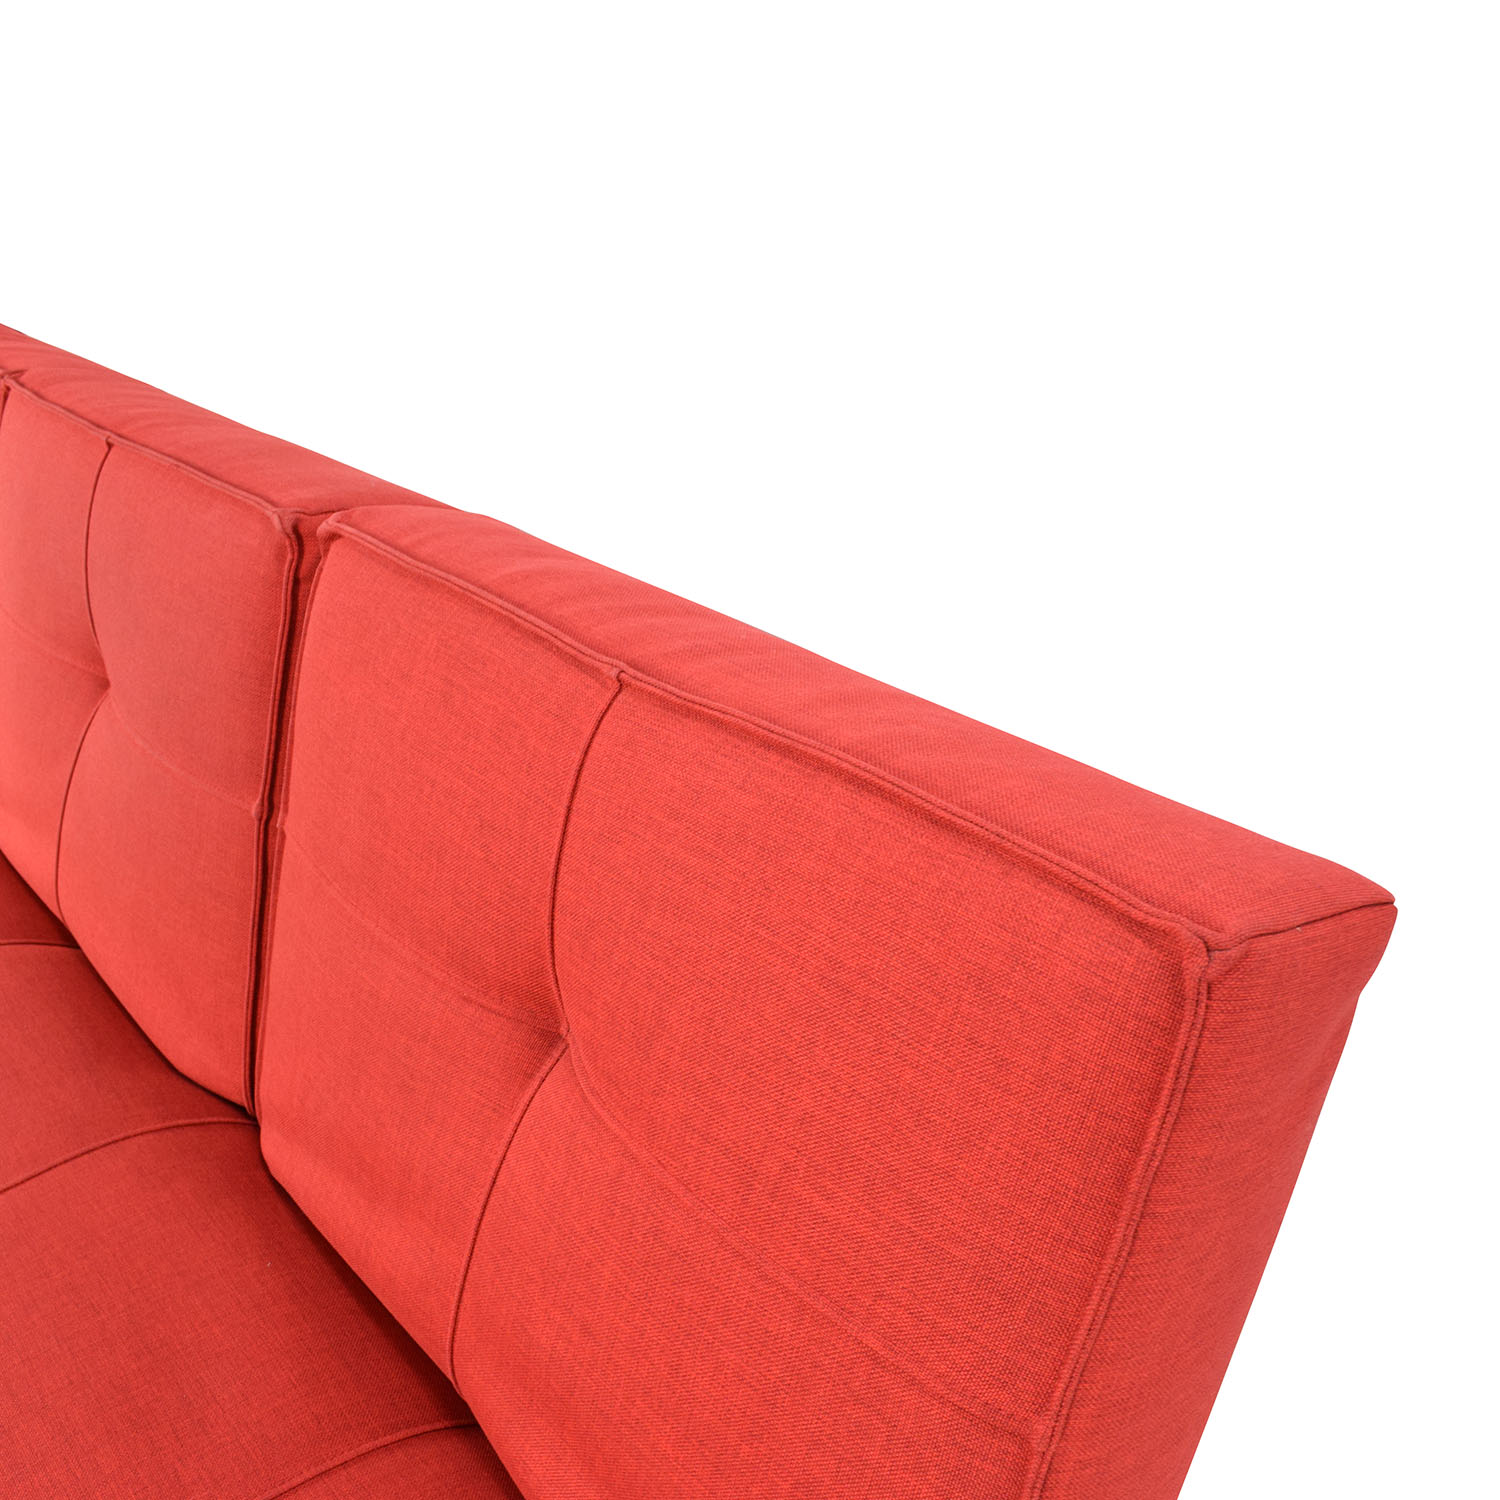 buy Room and Board Room & Board Eden Convertible Red Sofa online